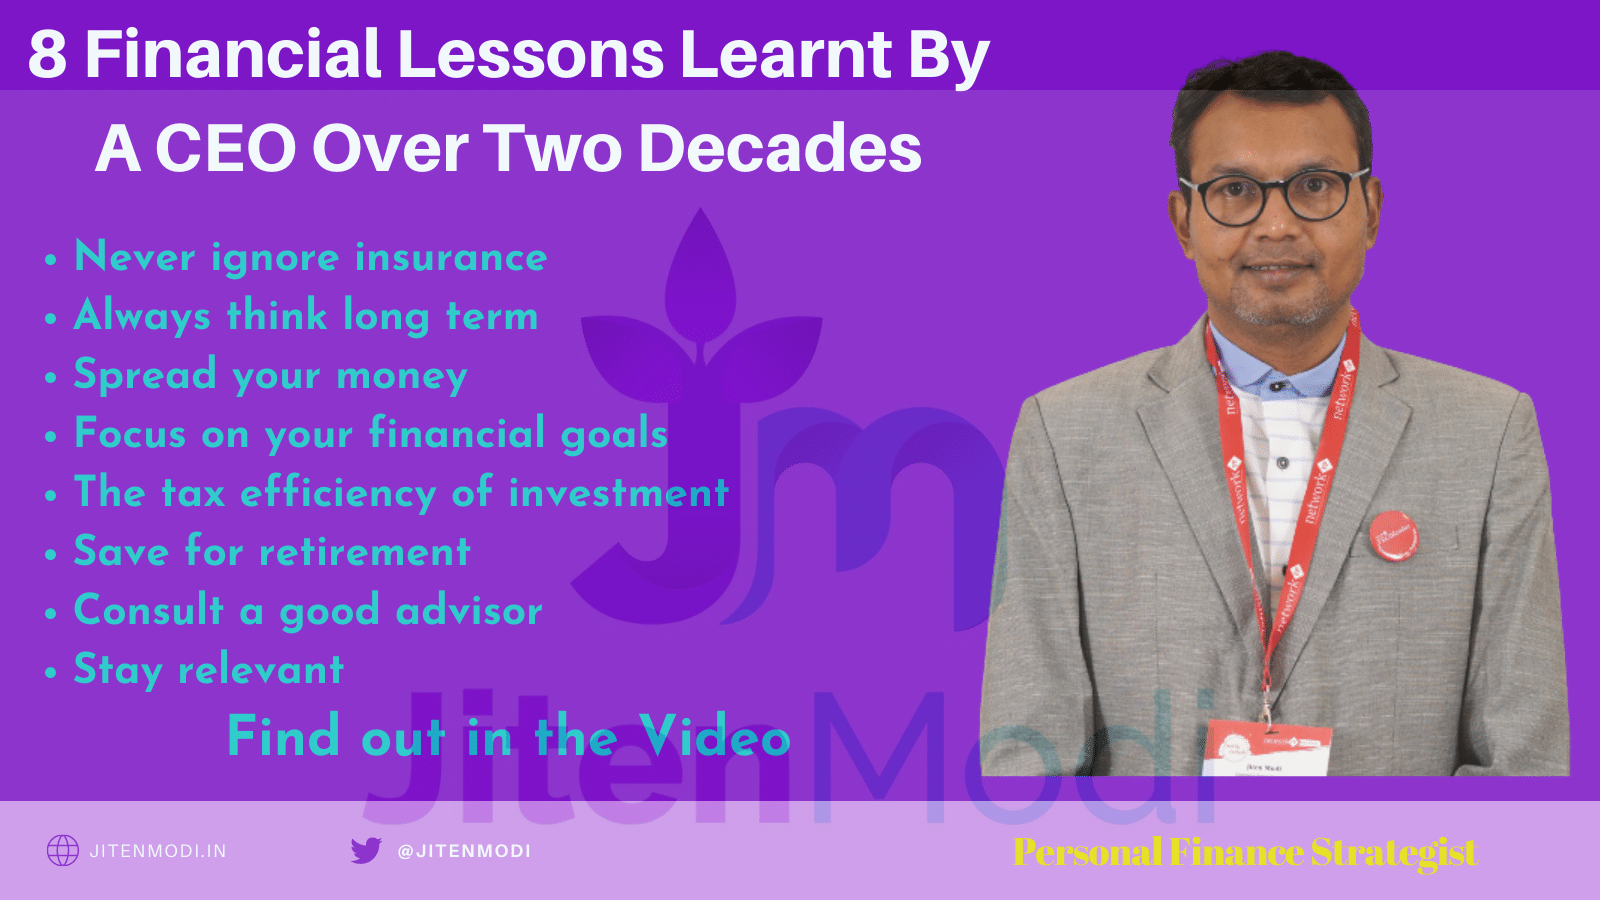 8 Financial Lessons Learnt By A CEO Over Two Decades